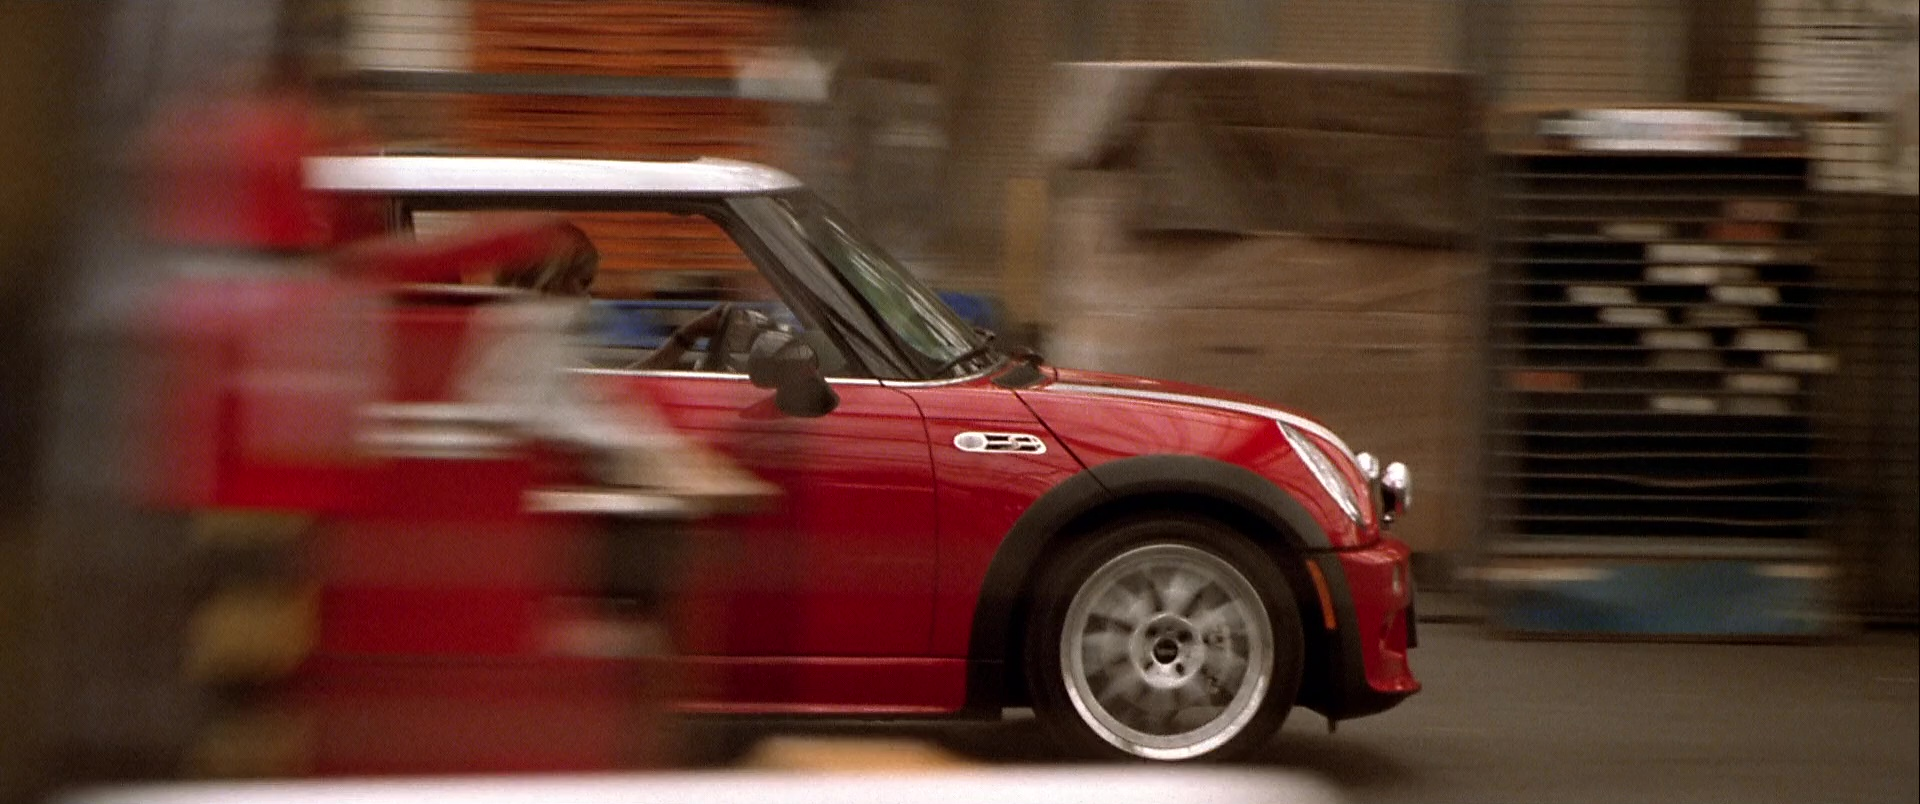 Mini Cooper S Red Car Used By Charlize Theron In The